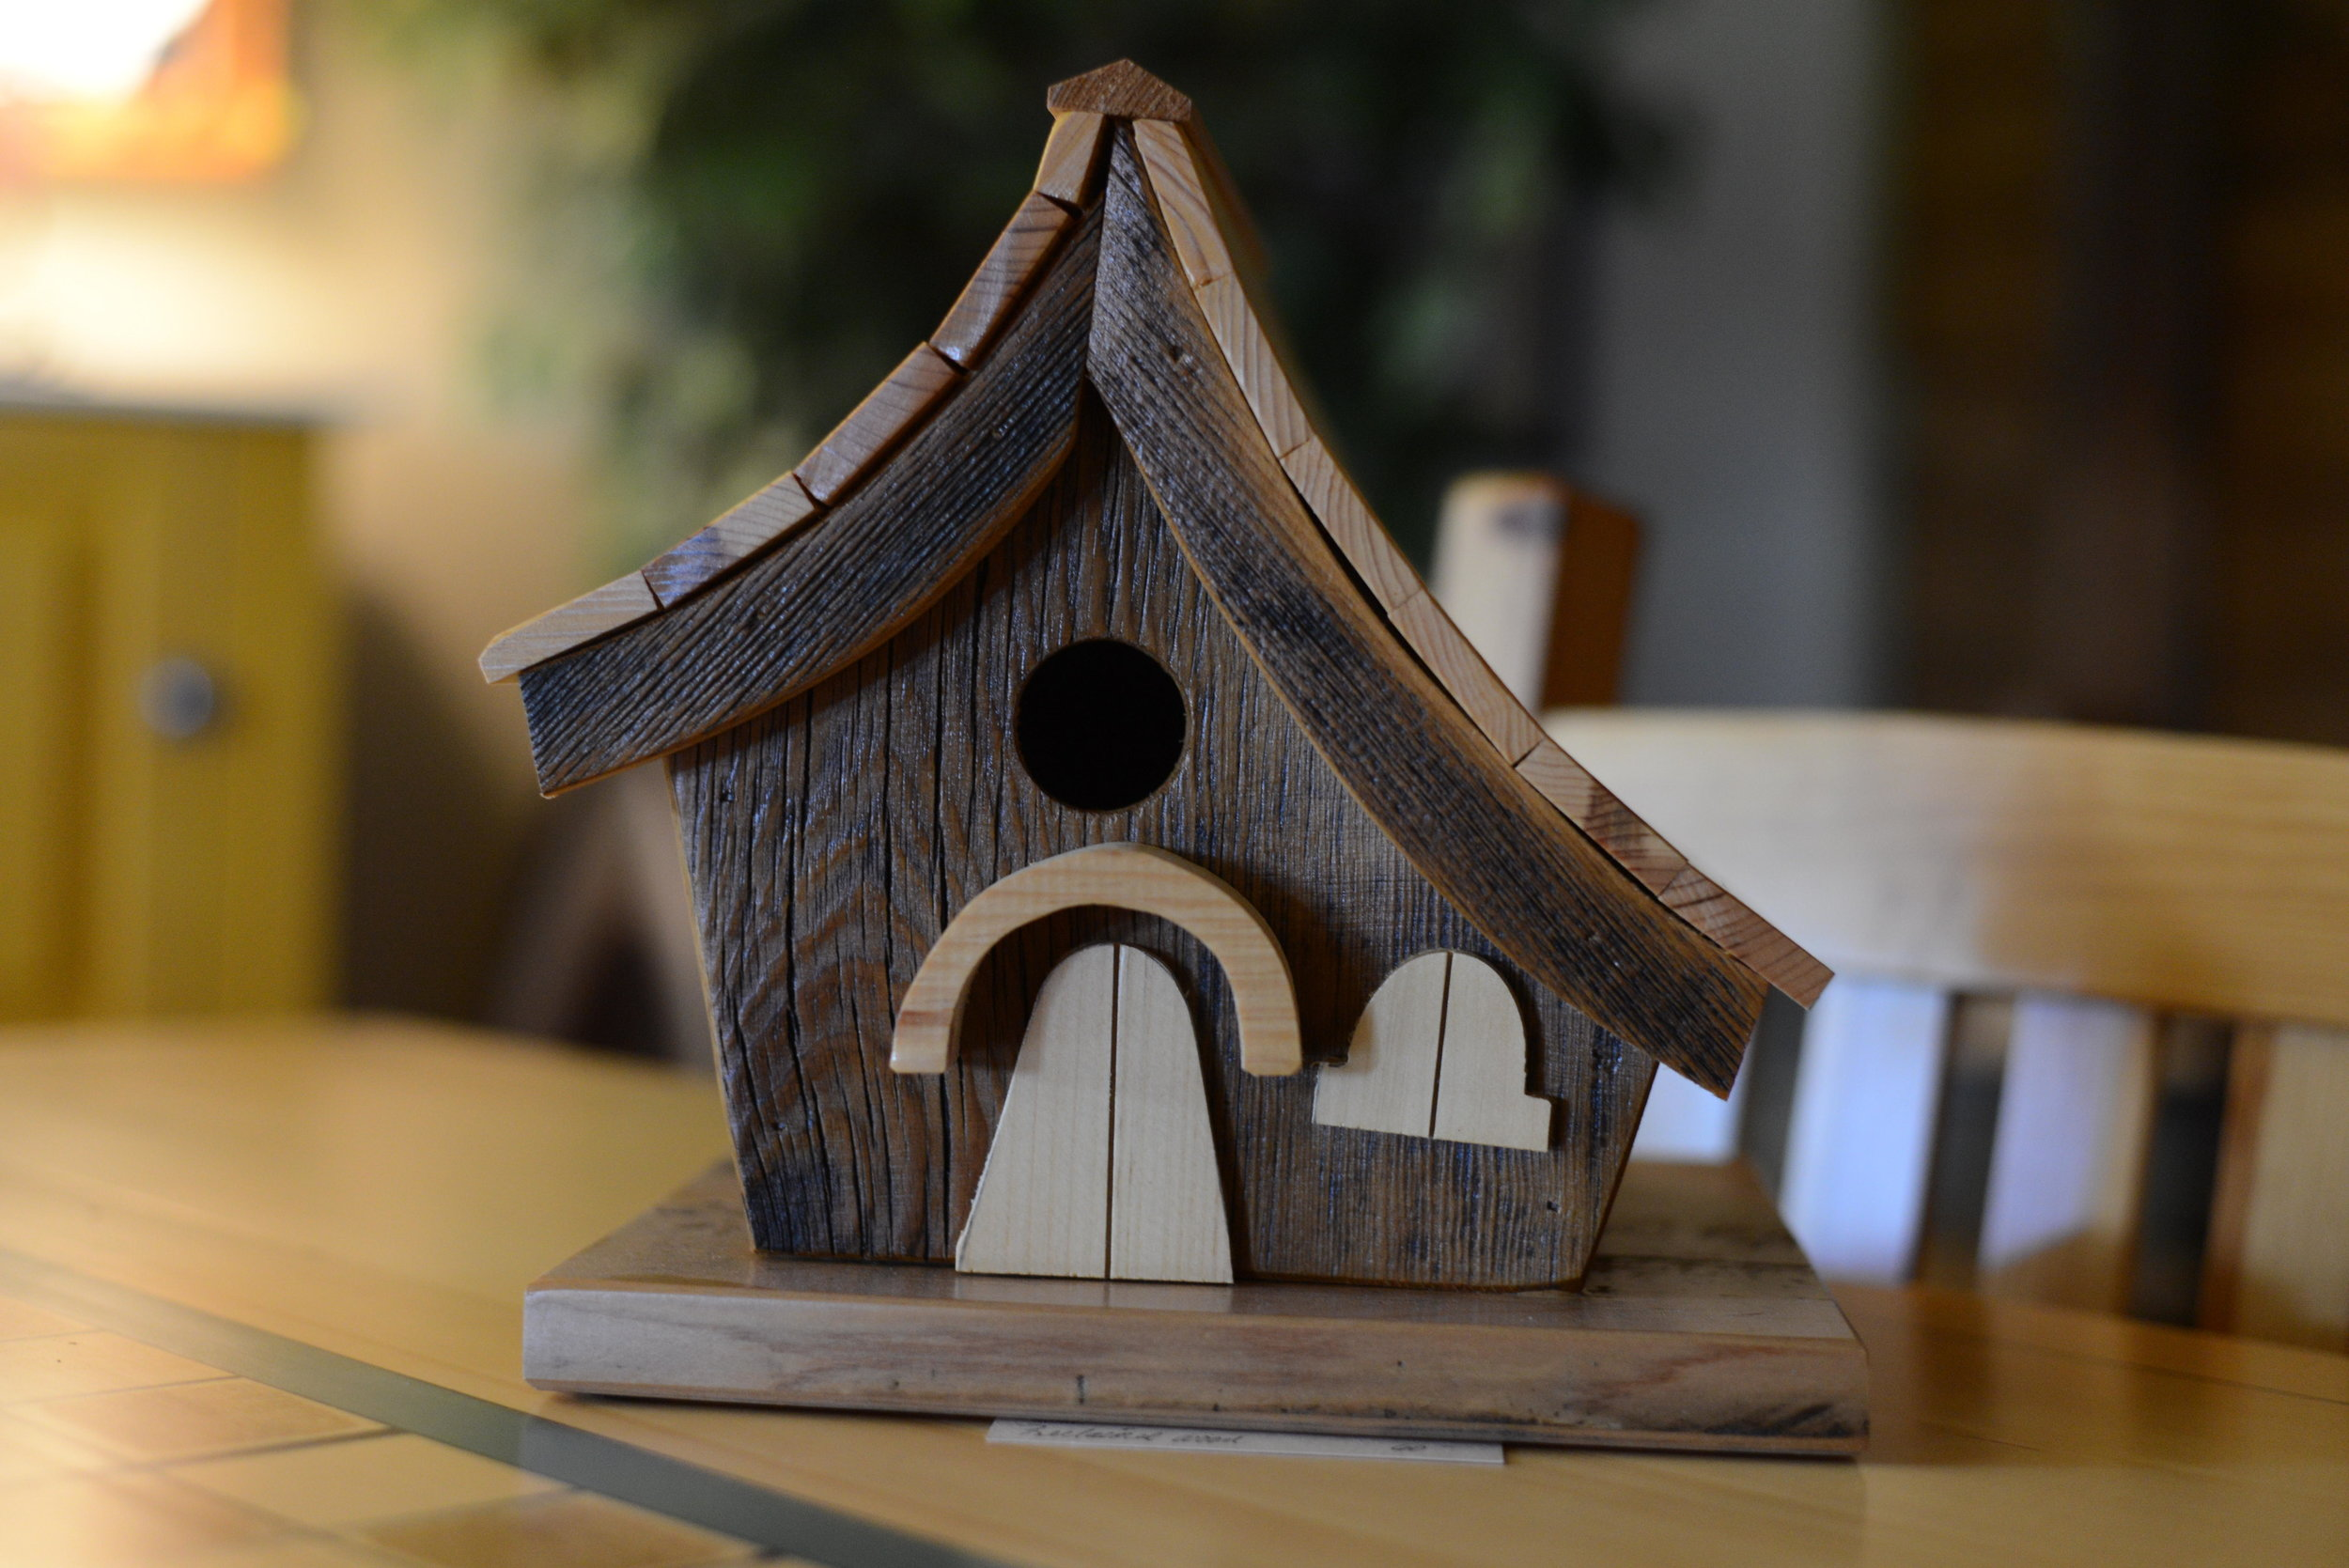 This custom birdhouse made from reclaimed wood will be given away as a door prize as part of the Art of the Lakes studio tour at Pine Mill Farm on Saturday afternoon. (Carter Jones/ FOCUS)